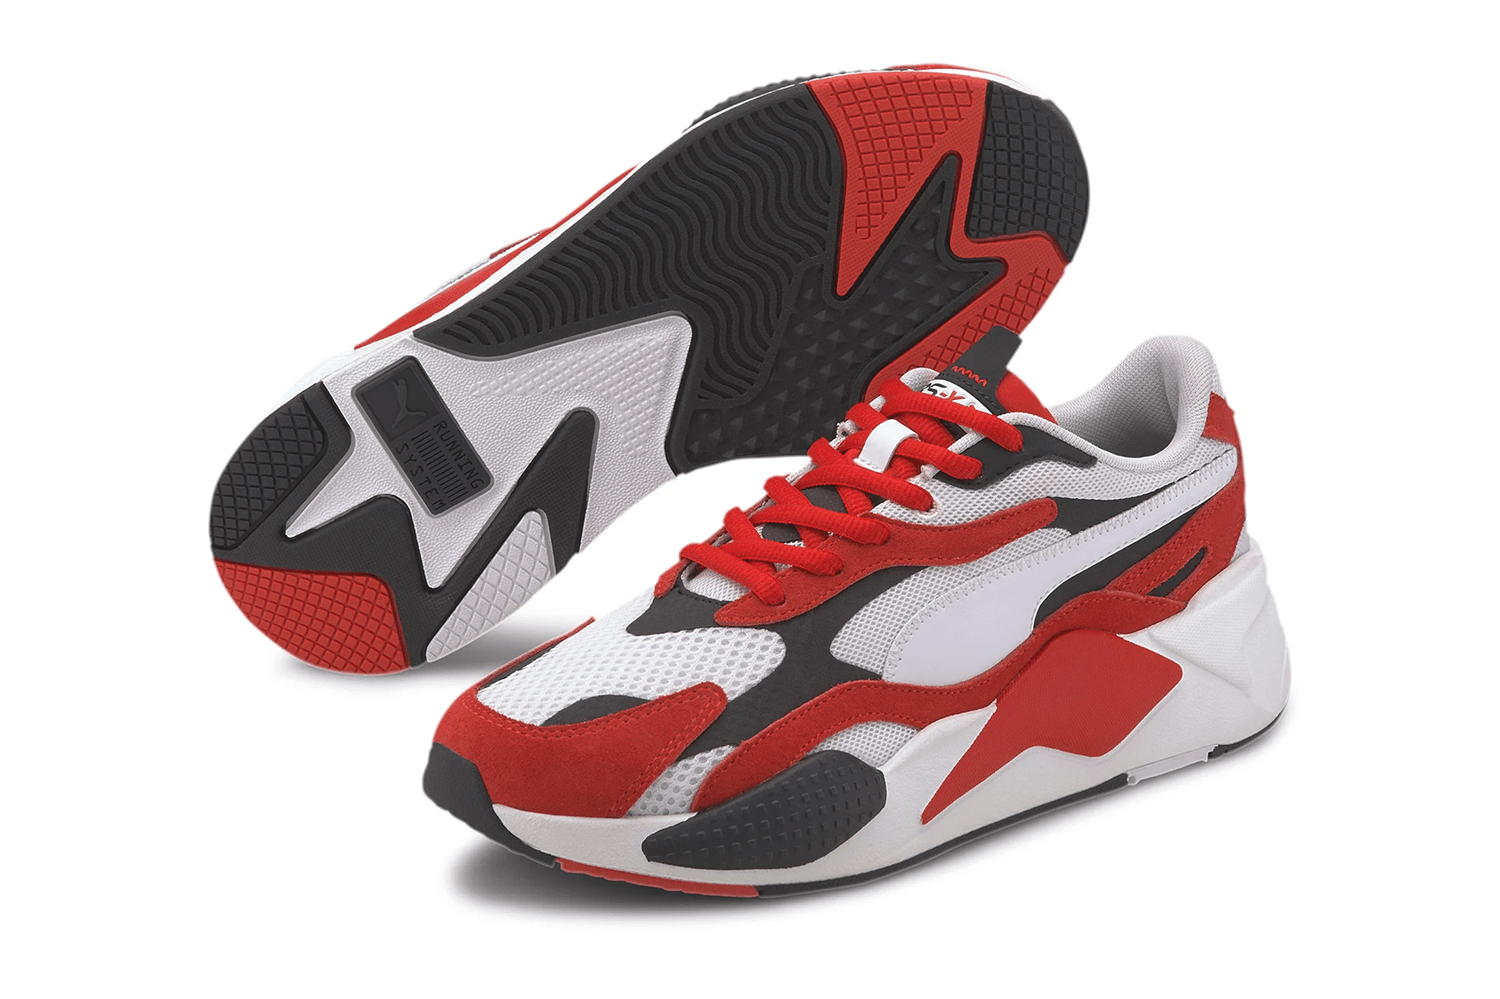 RS-X3 SUPER - 372884-01 MENS FOOTWEAR PUMA